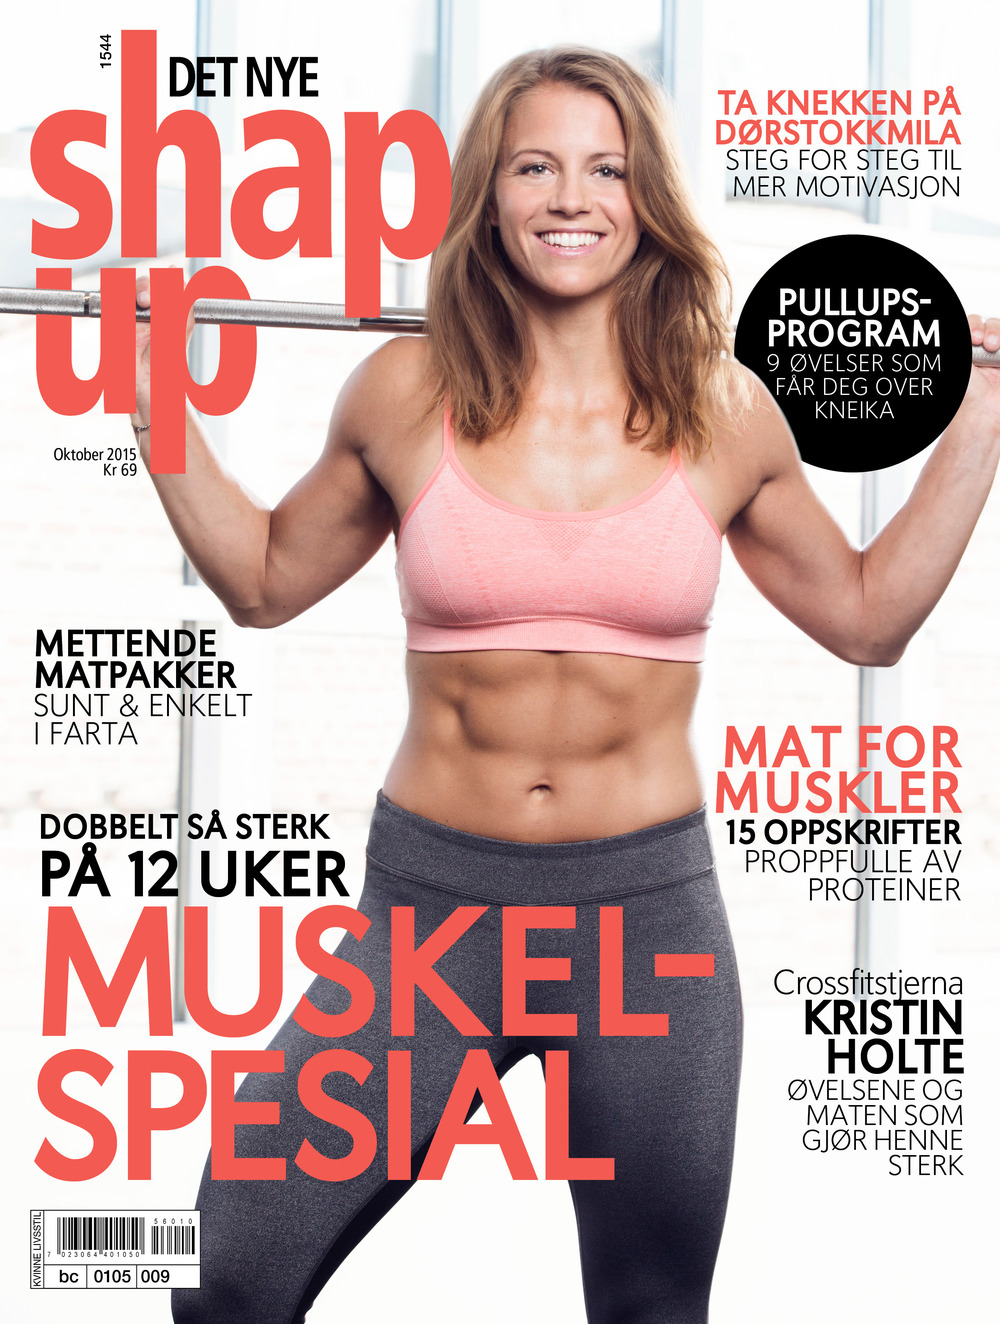 Crossfit Covershoot med Kristin Holte